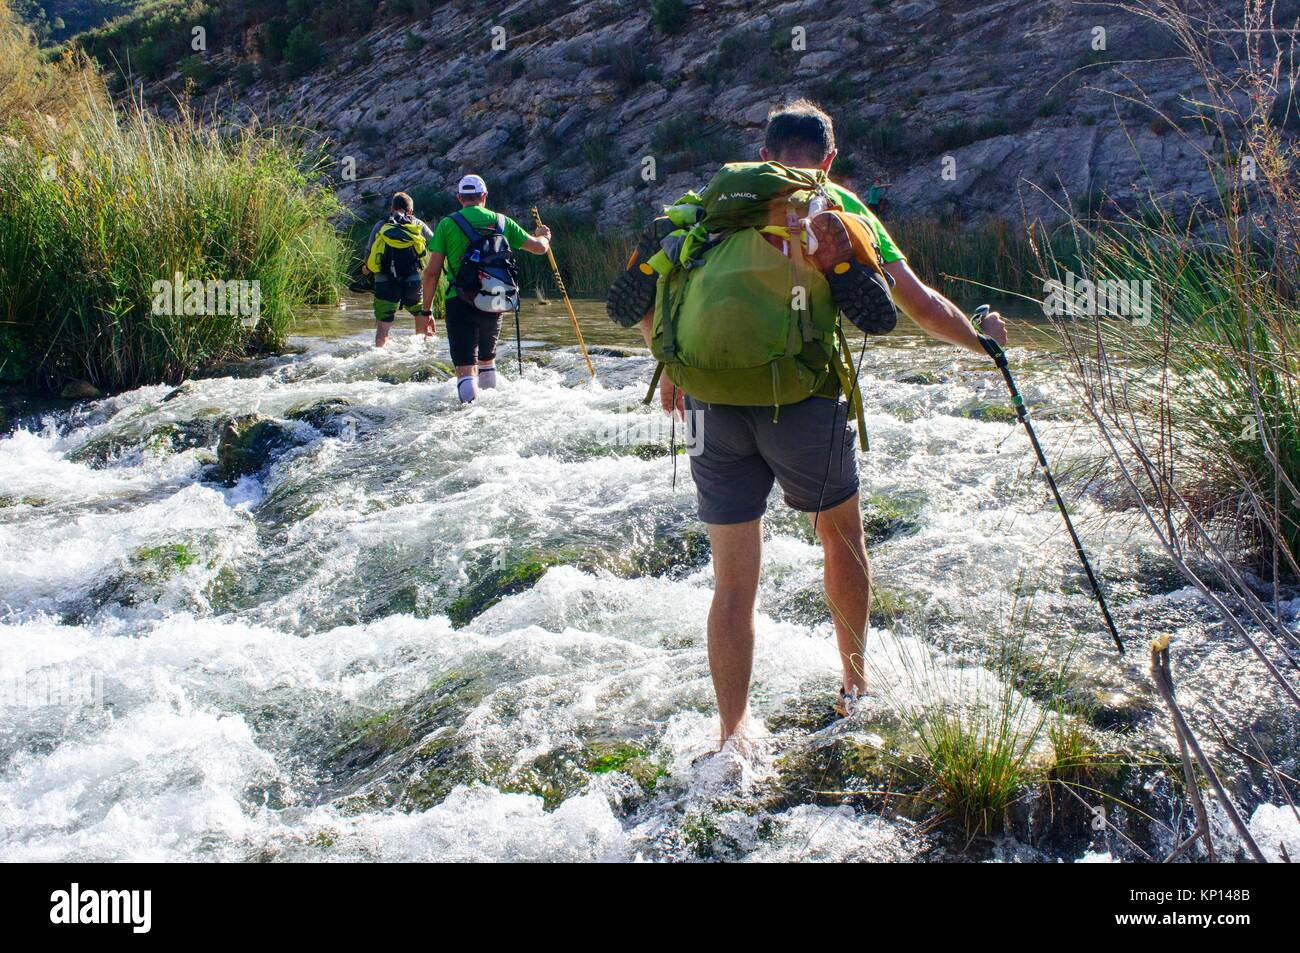 Walkers crossing the river Jucar in Millares, Valencia, Spain - Stock Image